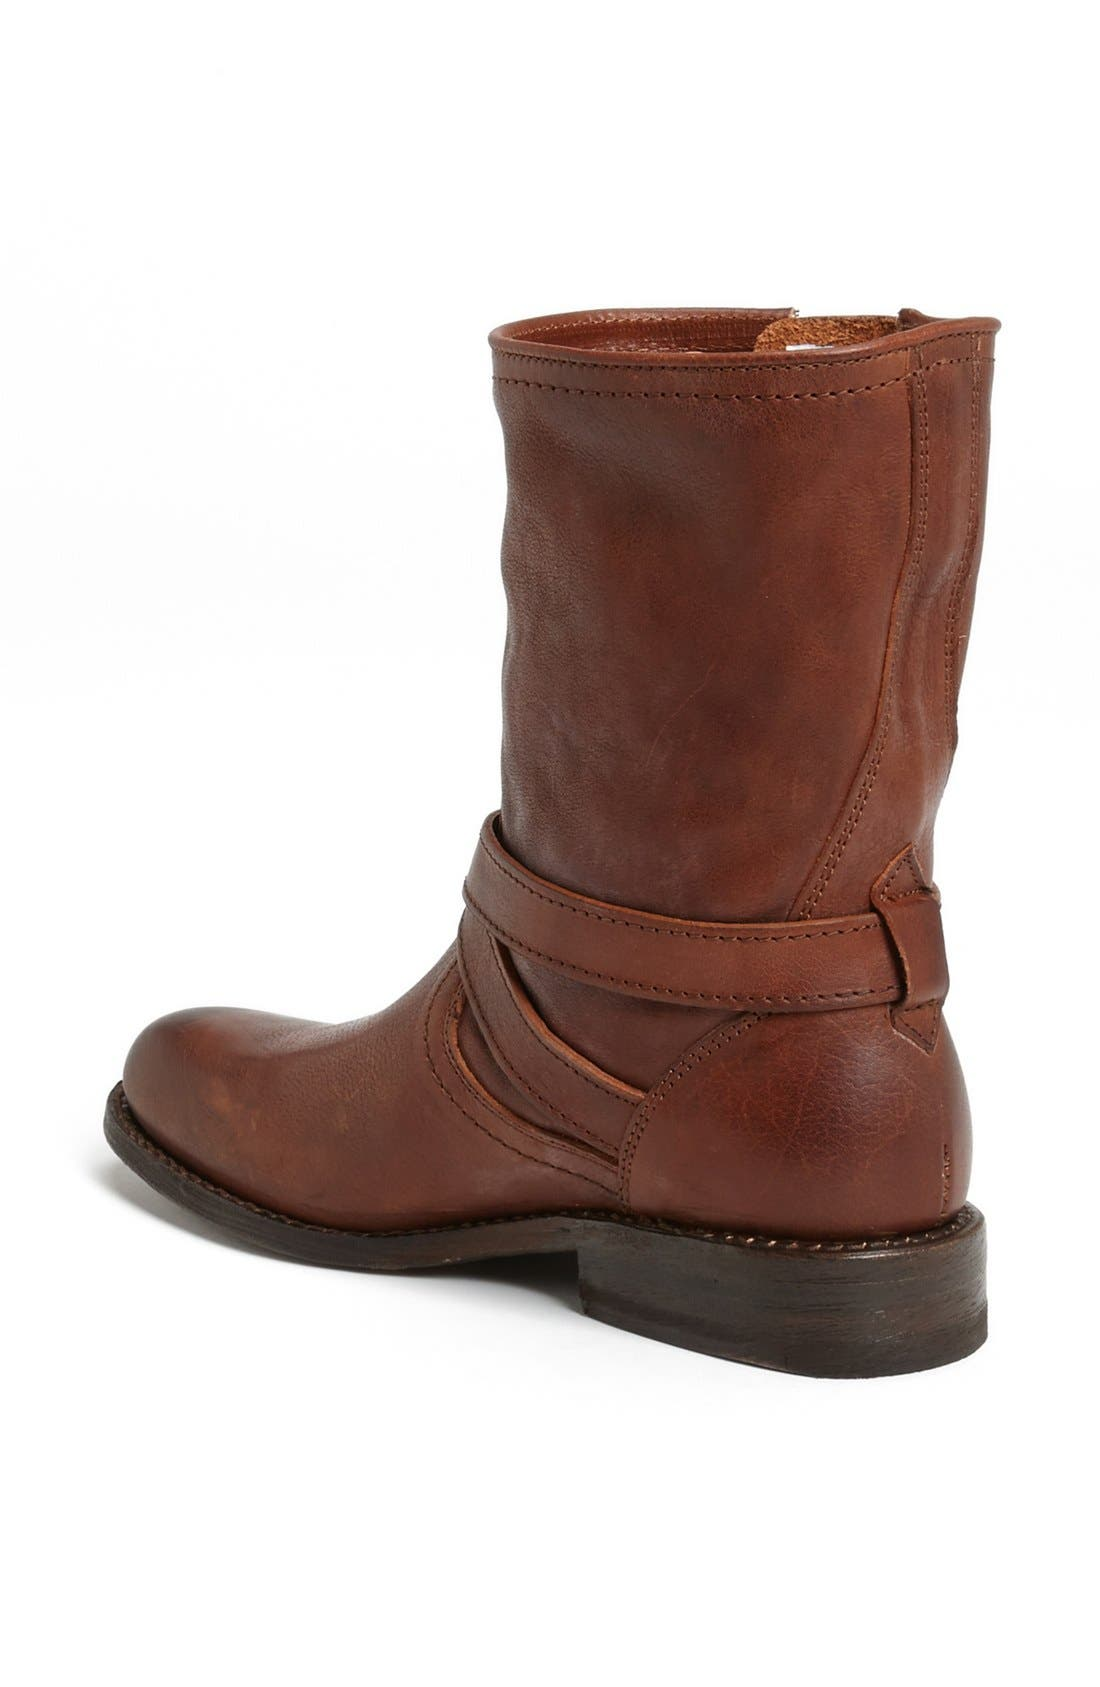 Alternate Image 2  - Frye 'Jayden Cross Engineer' Leather Boot